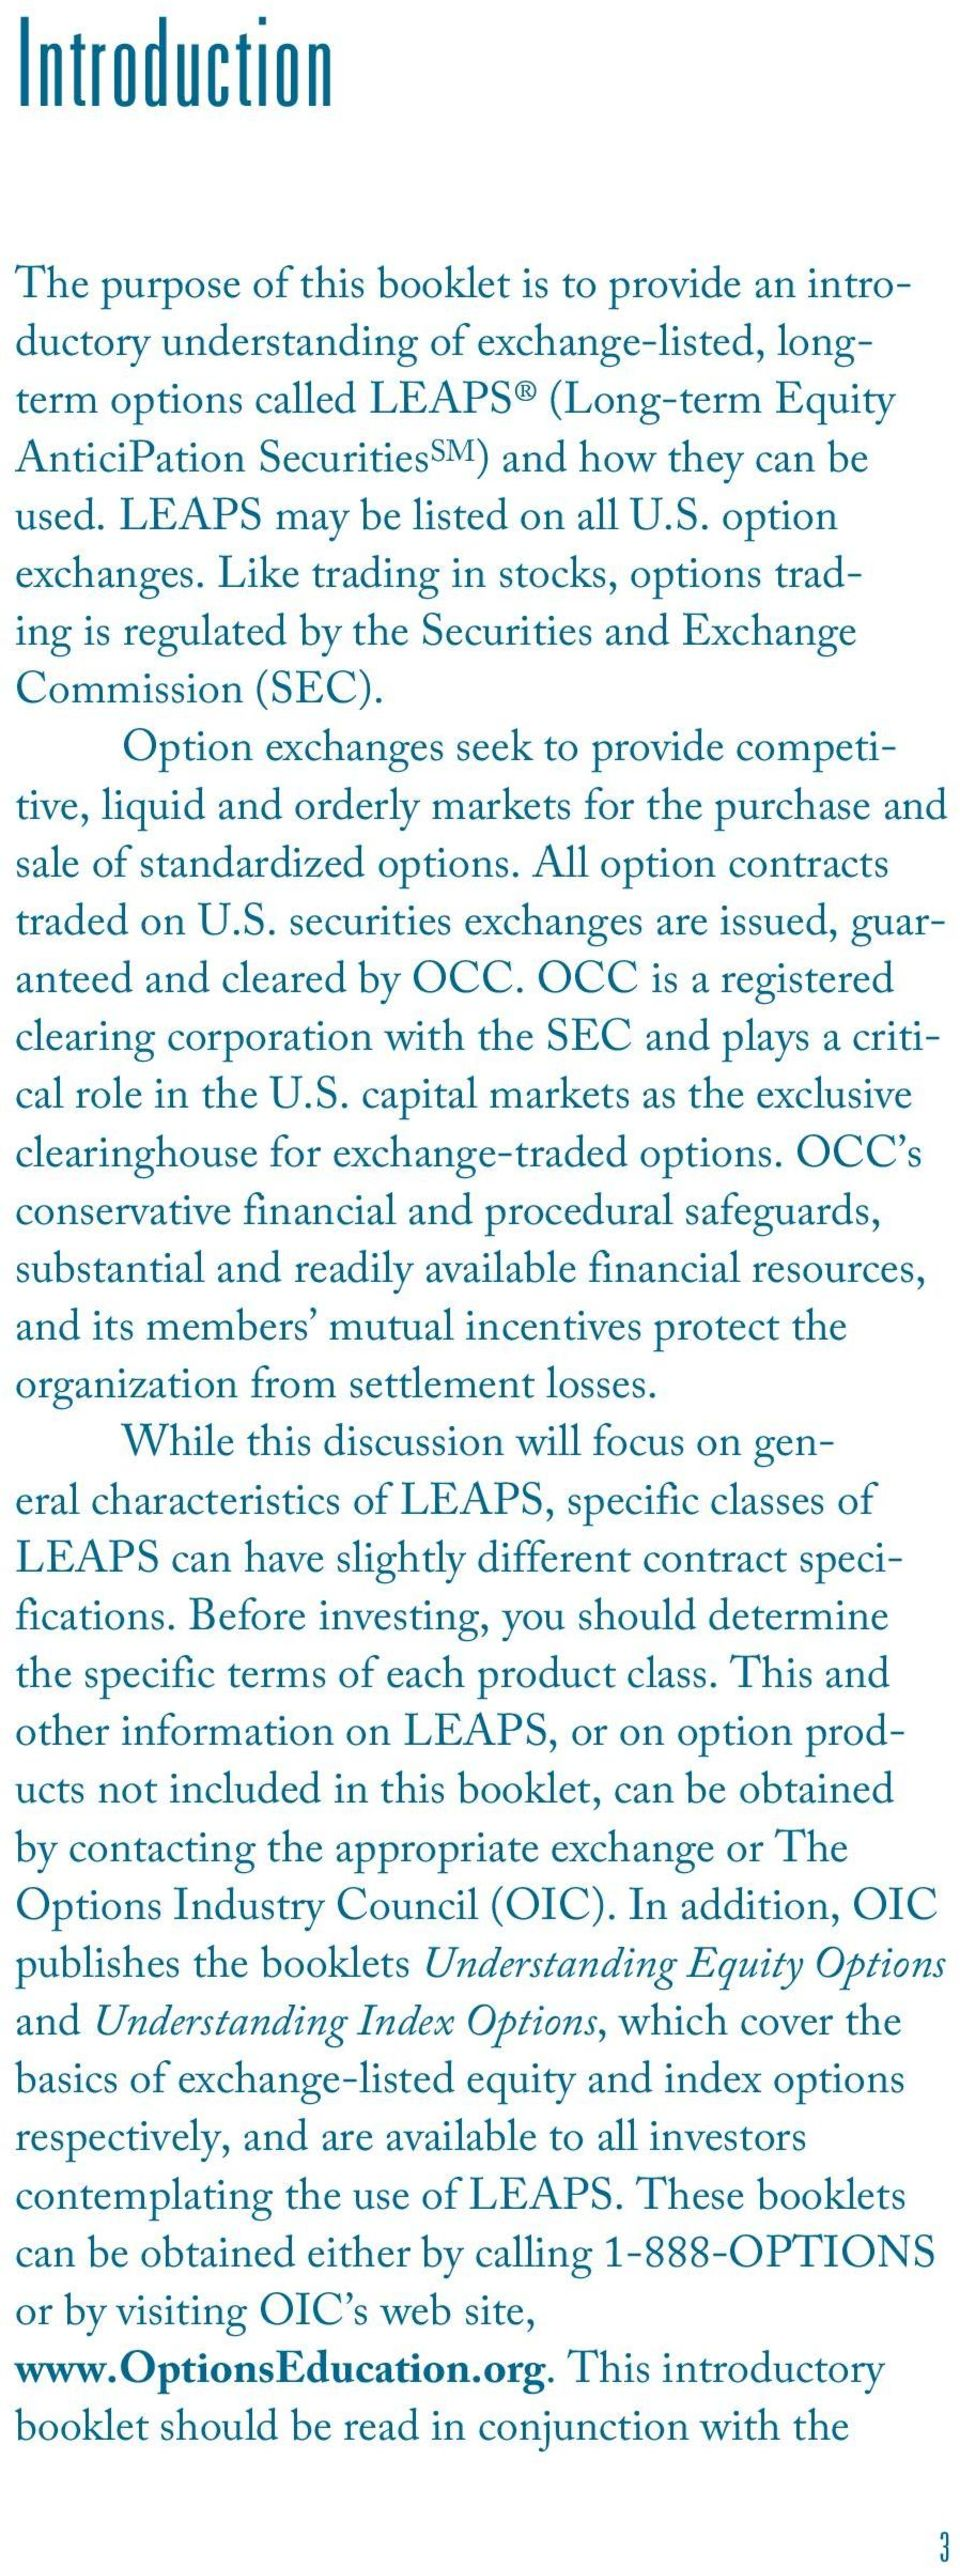 Option exchanges seek to provide competitive, liquid and orderly markets for the purchase and sale of standardized options. All option contracts traded on U.S.